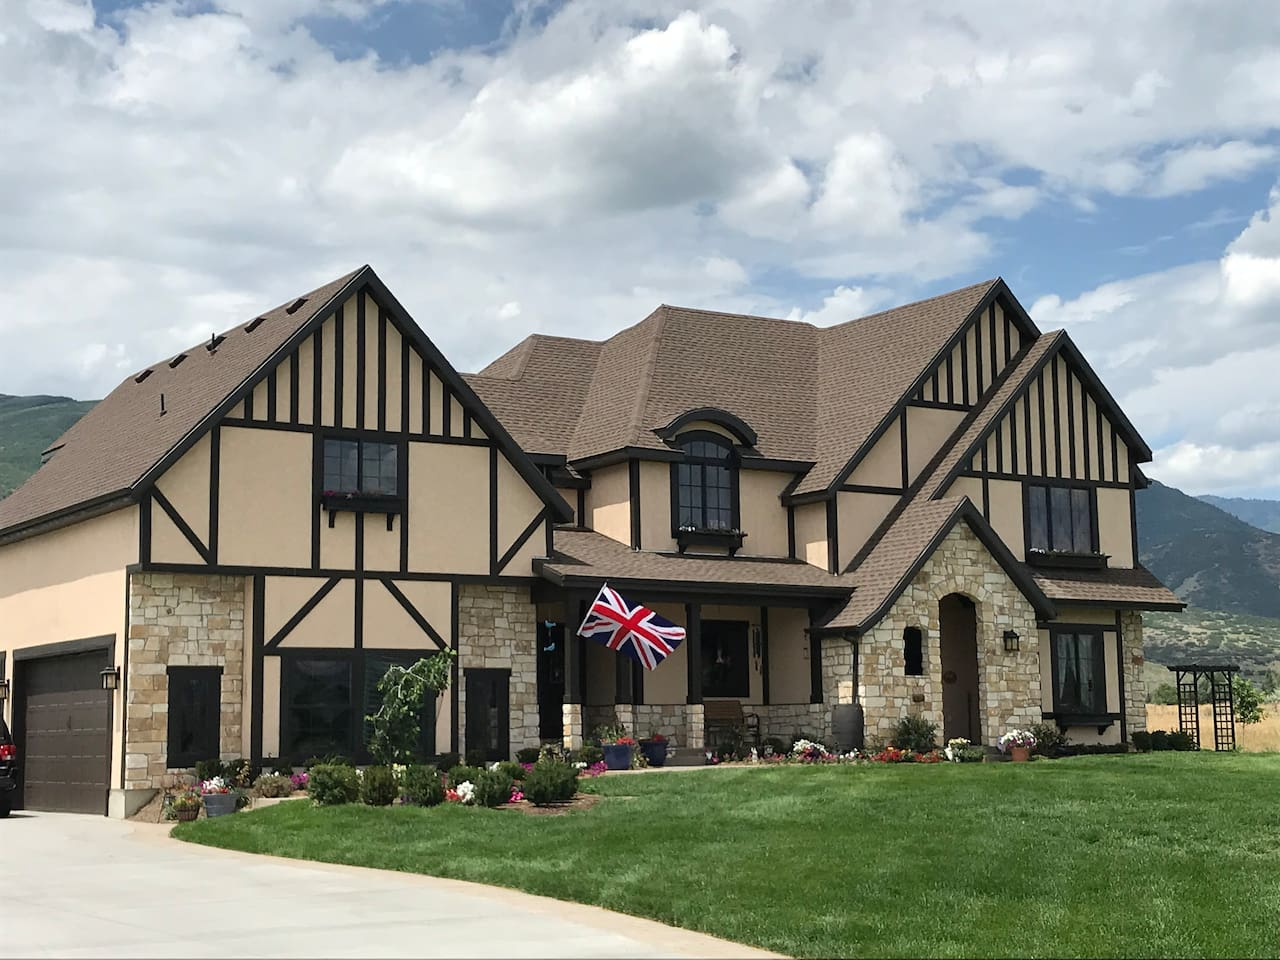 English Country Tudor home located in Beautiful Midway, Utah